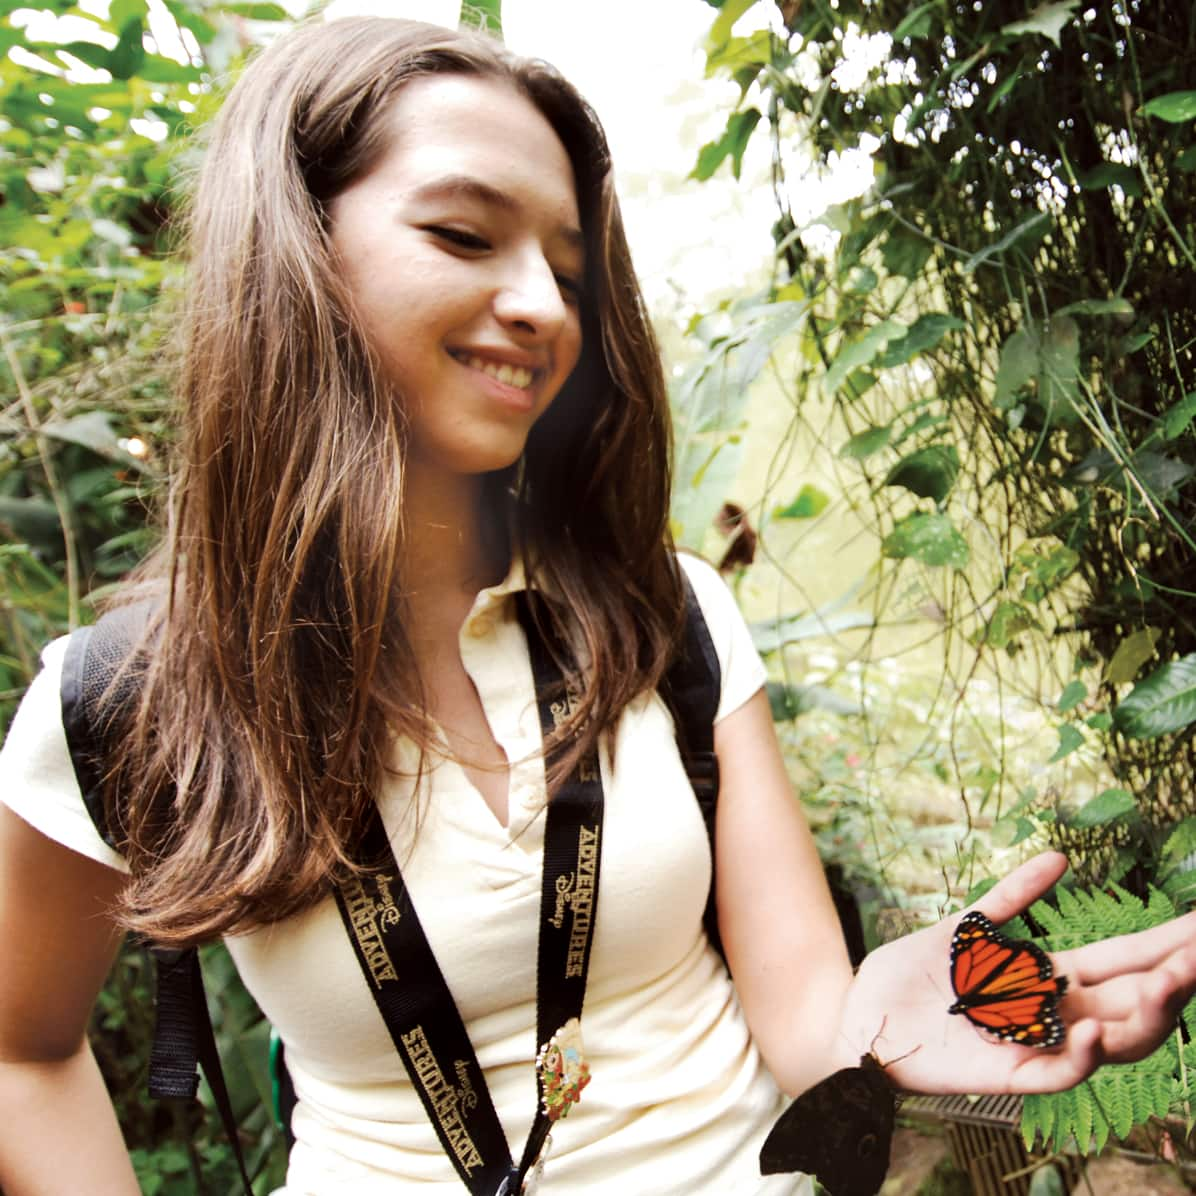 Two butterflies sit on the hand of a girl wearing an Adventures by Disney lanyard